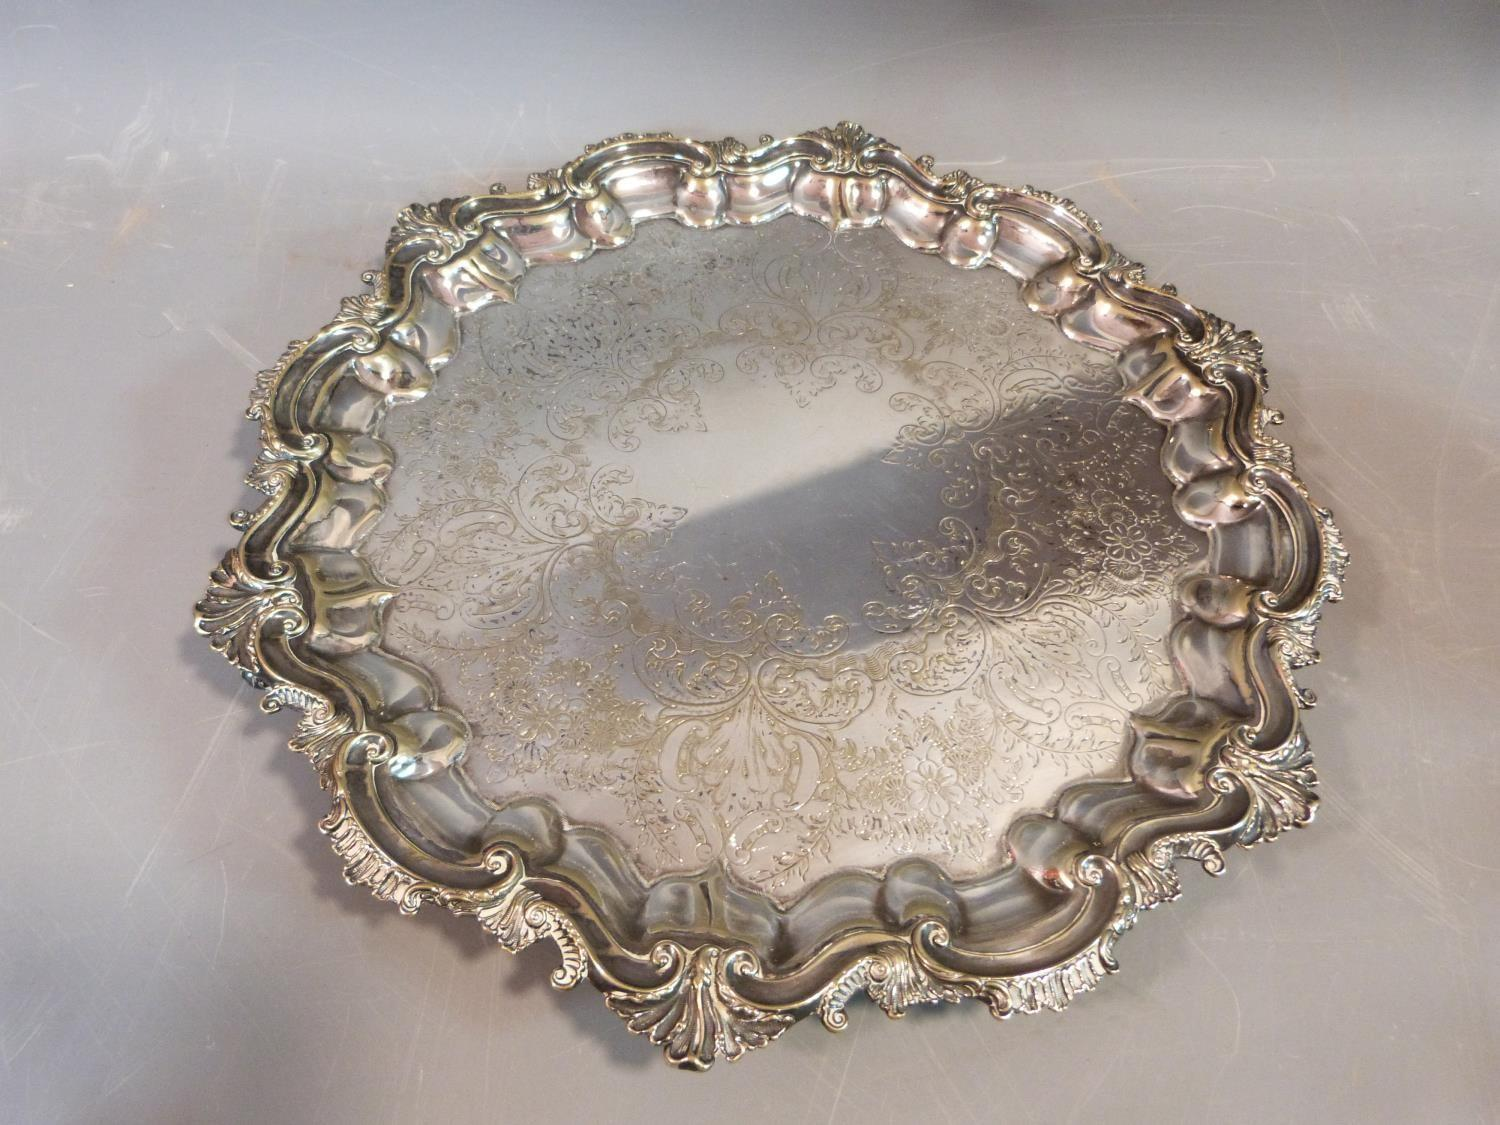 Lot 10 - A collection of silver plate including a four footed repousse design tray, toast rack, swing